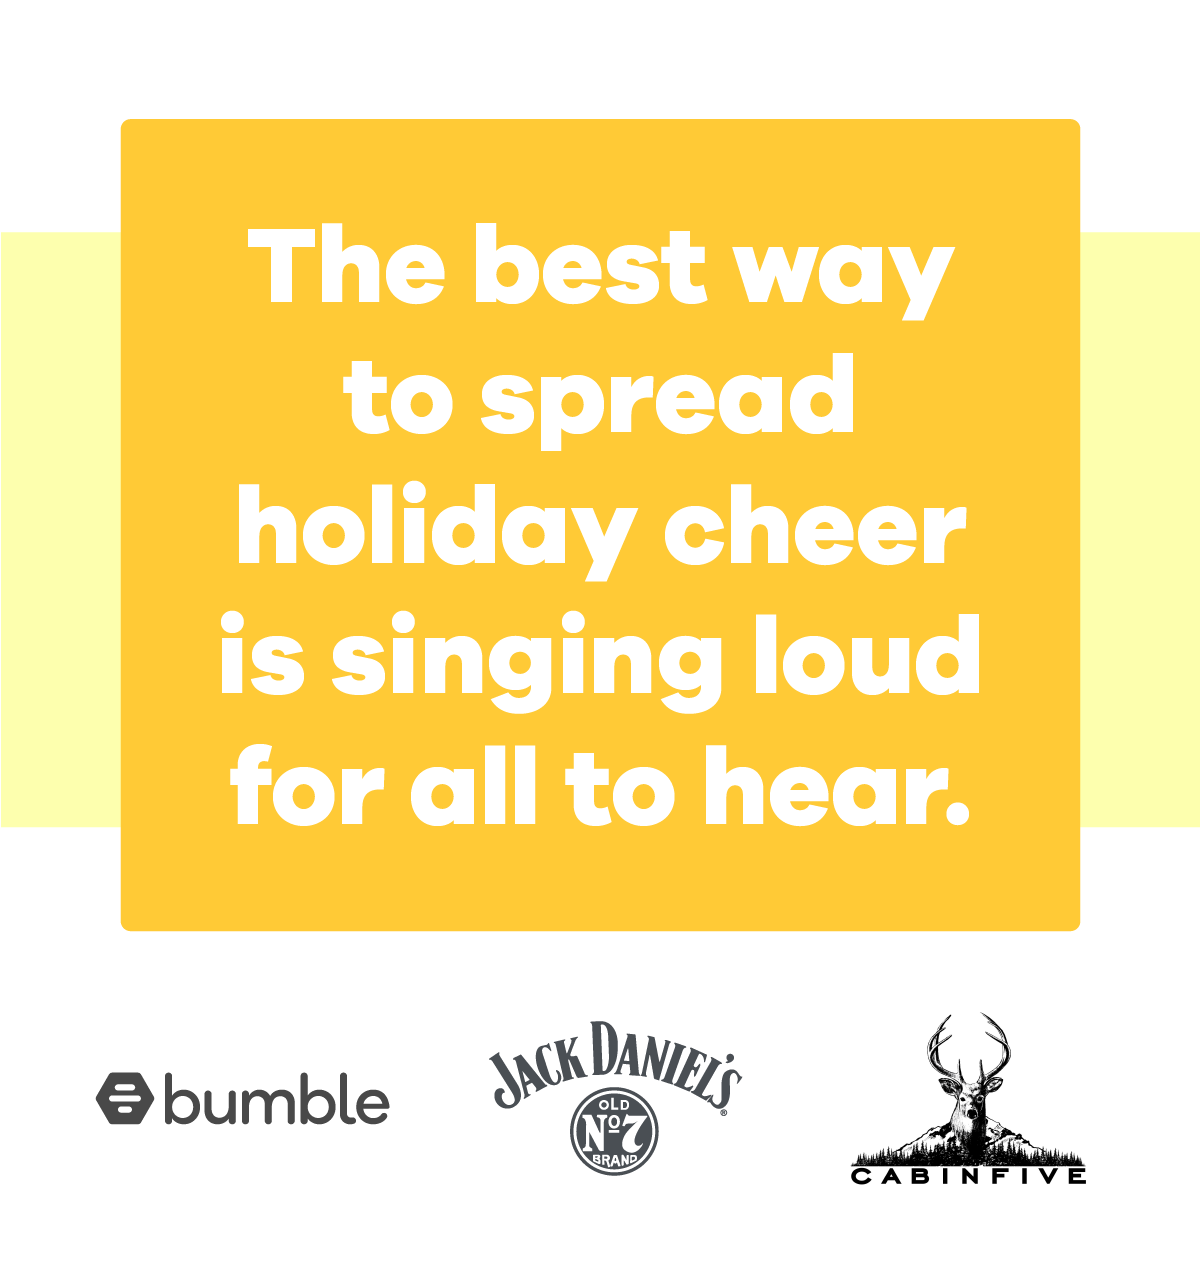 Celebrate the holidays with Bumble - Join us at Cabin Five in your favourite ugly sweater!